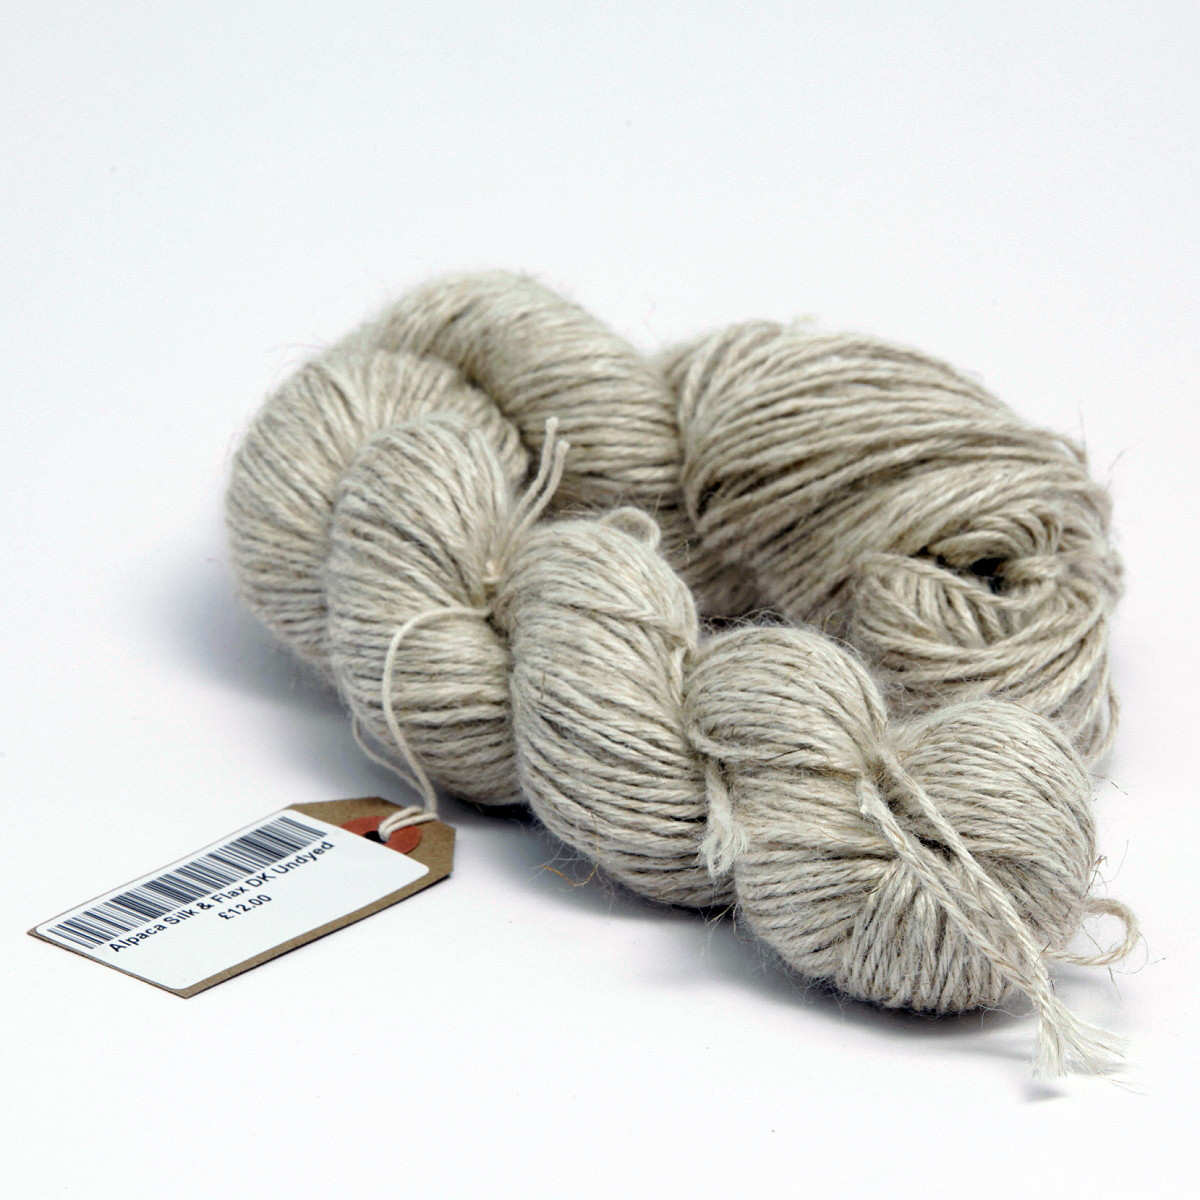 Best Of Alpaca Silk & Flax Dk Undyed the Yarn Gallery Yarn Outlet Of Amazing 50 Photos Yarn Outlet